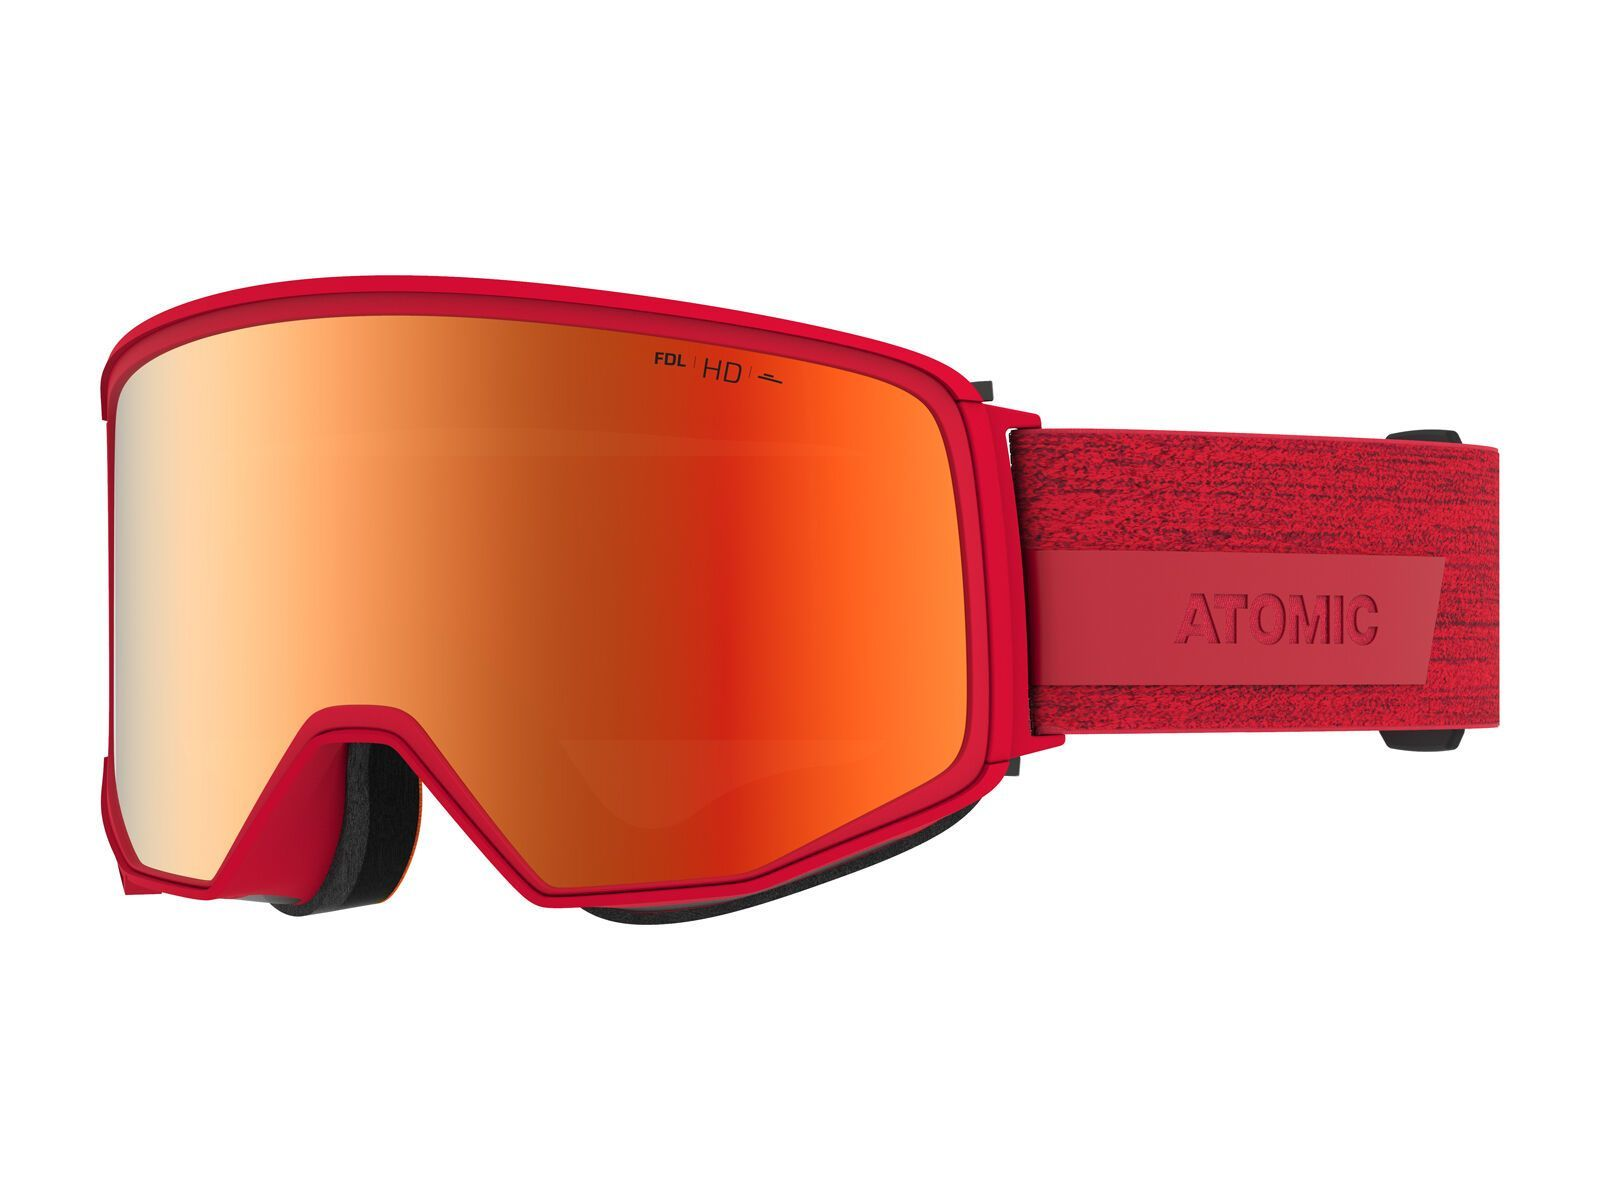 Atomic Four Q HD inkl. WS, red/Lens: red hd - Skibrille AN5105962